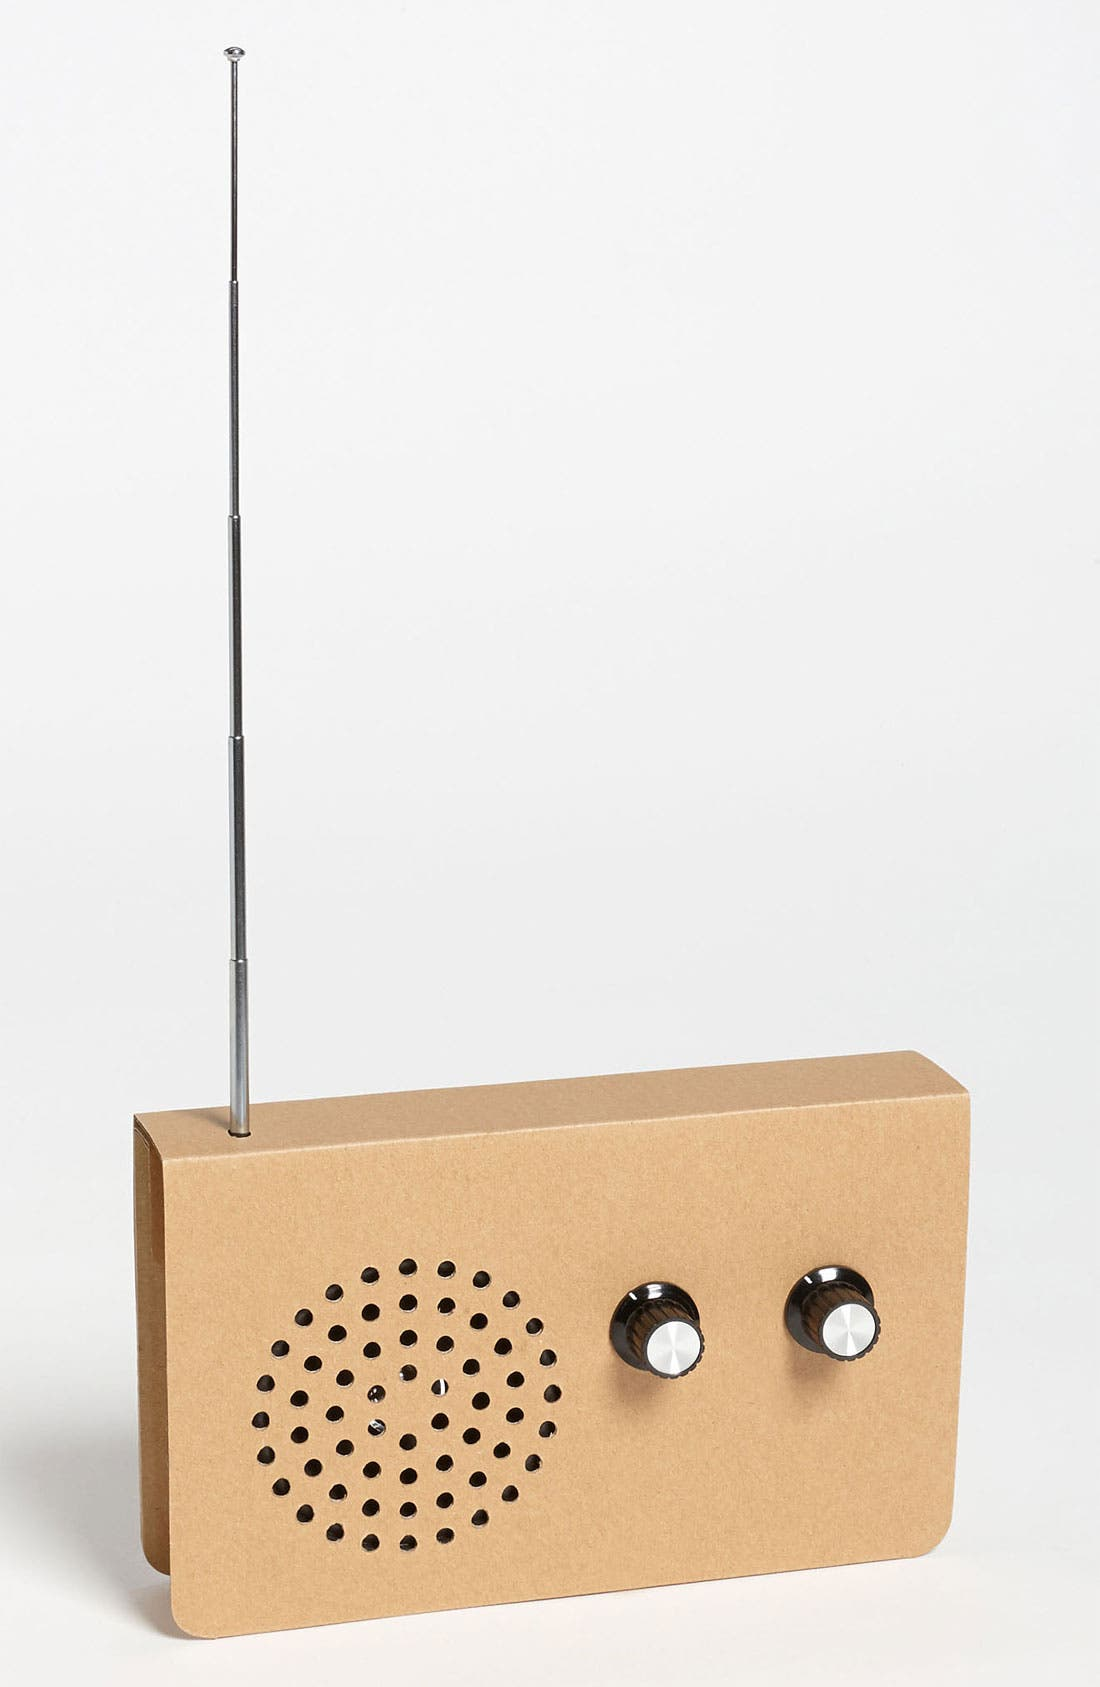 Main Image - Cardboard MP3 Player FM Radio